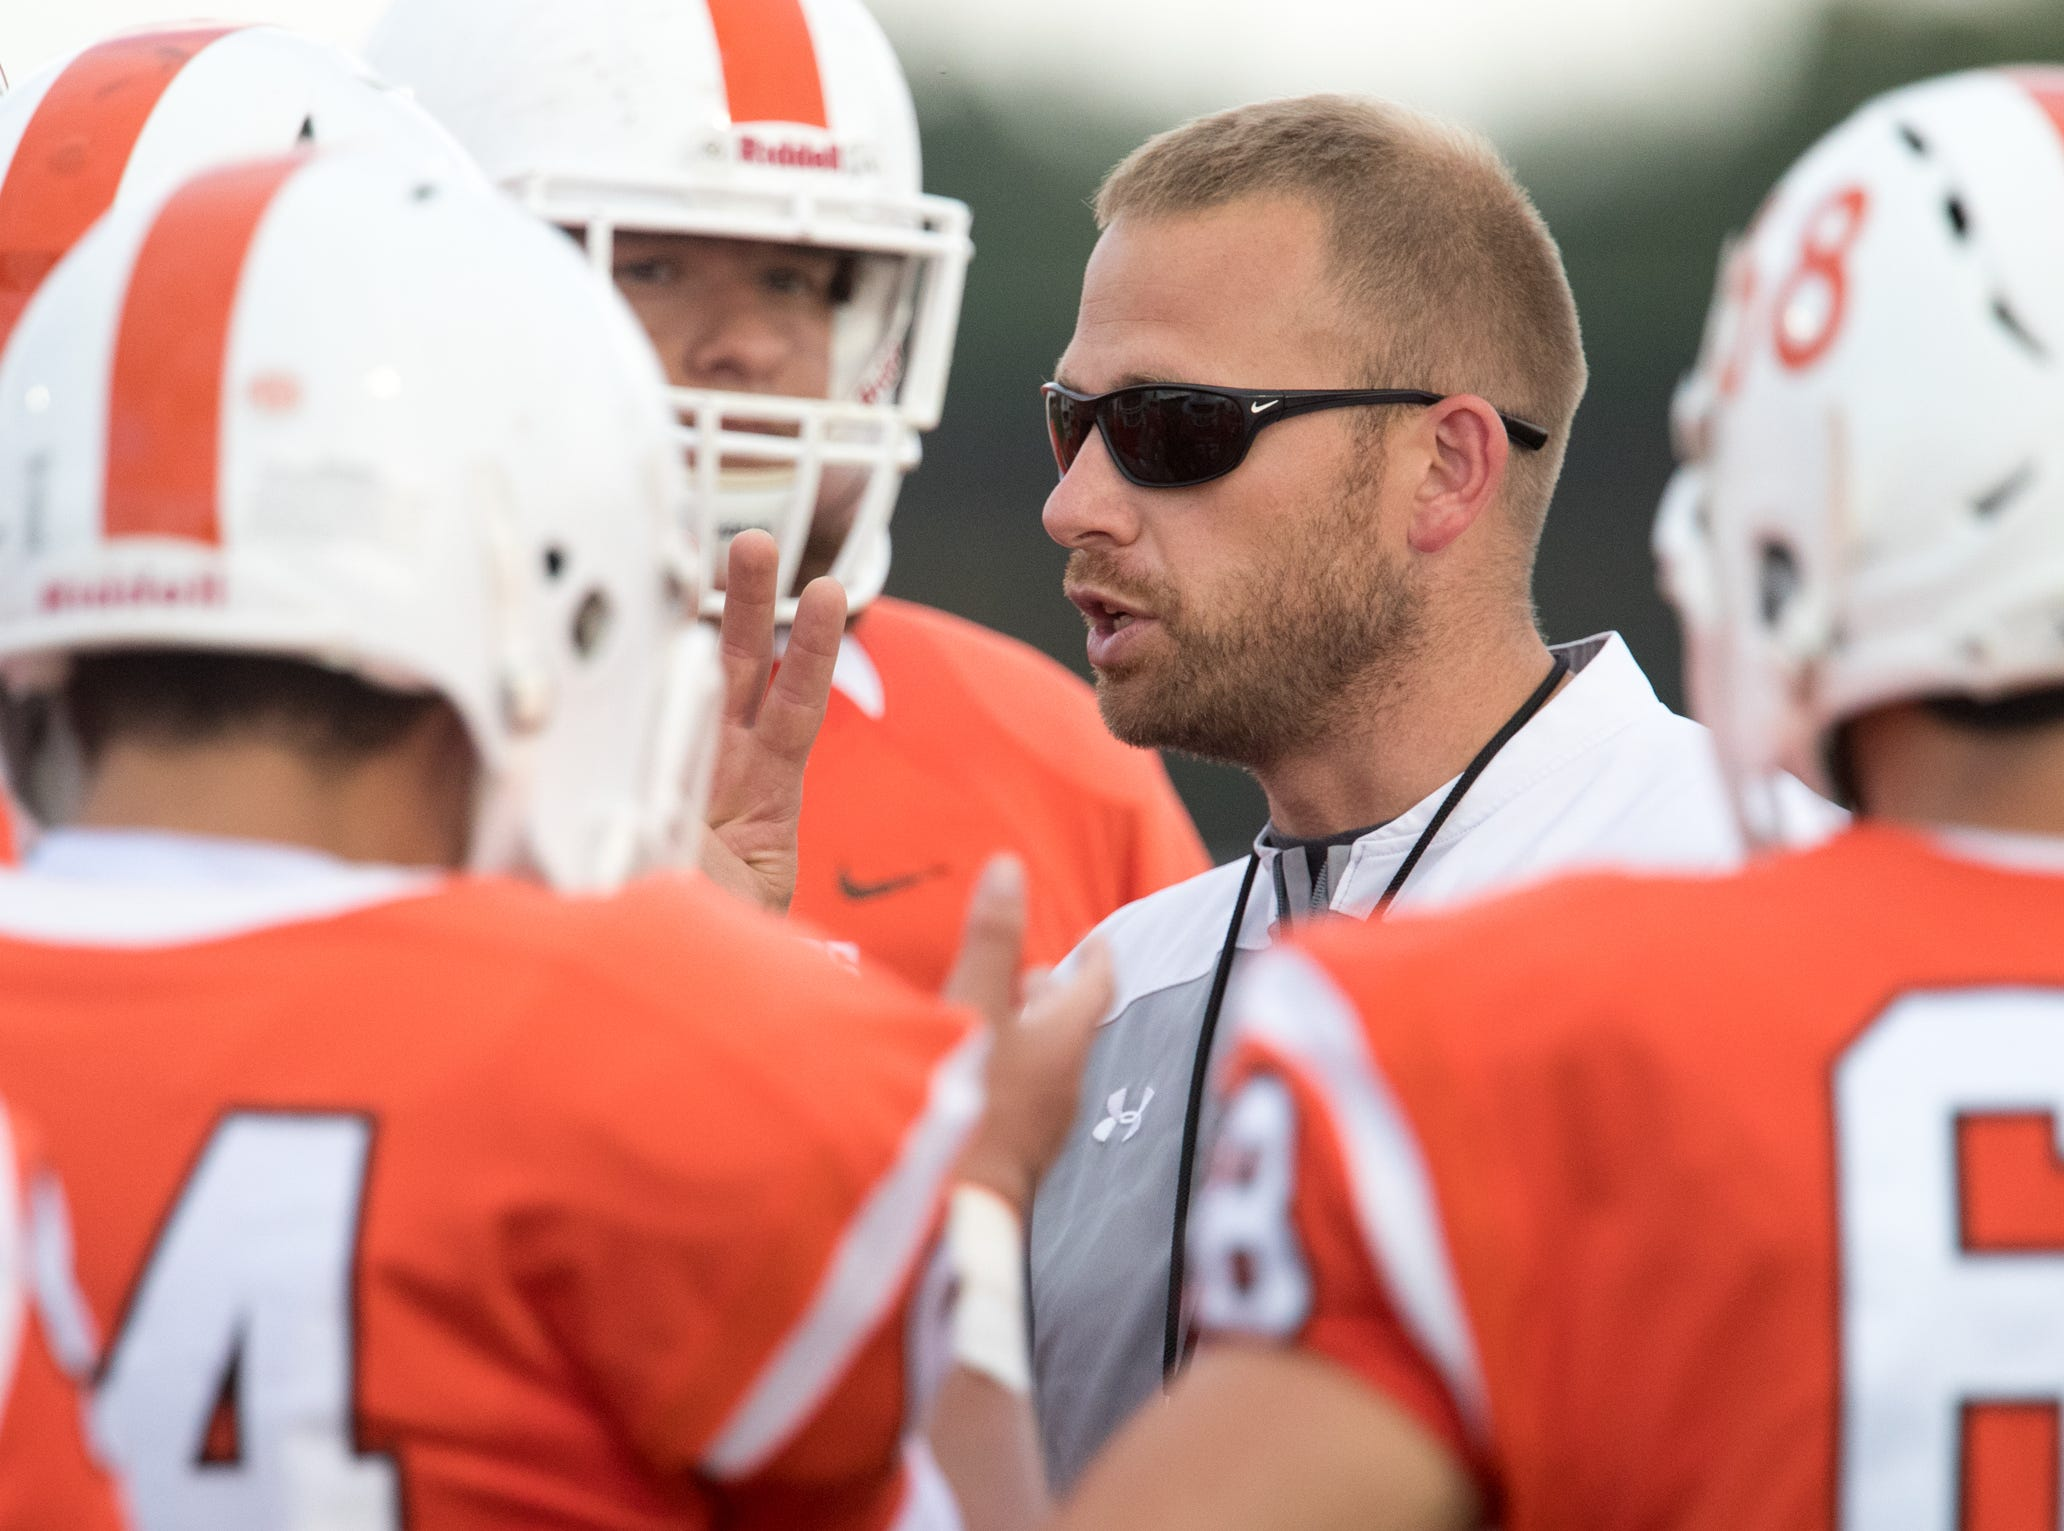 Jon Kirschner, talks with staff and players from Hamilton Heights High School, before game action against Mount Vernon High School, won by MVHS, 43-14, Arcadia, Friday, Aug. 17, 2018. This game is the first for HHHS head coach Jon Kirschner, who faced his father Mike Kirschner, a veteran and champion coach in his first season at MVHS.